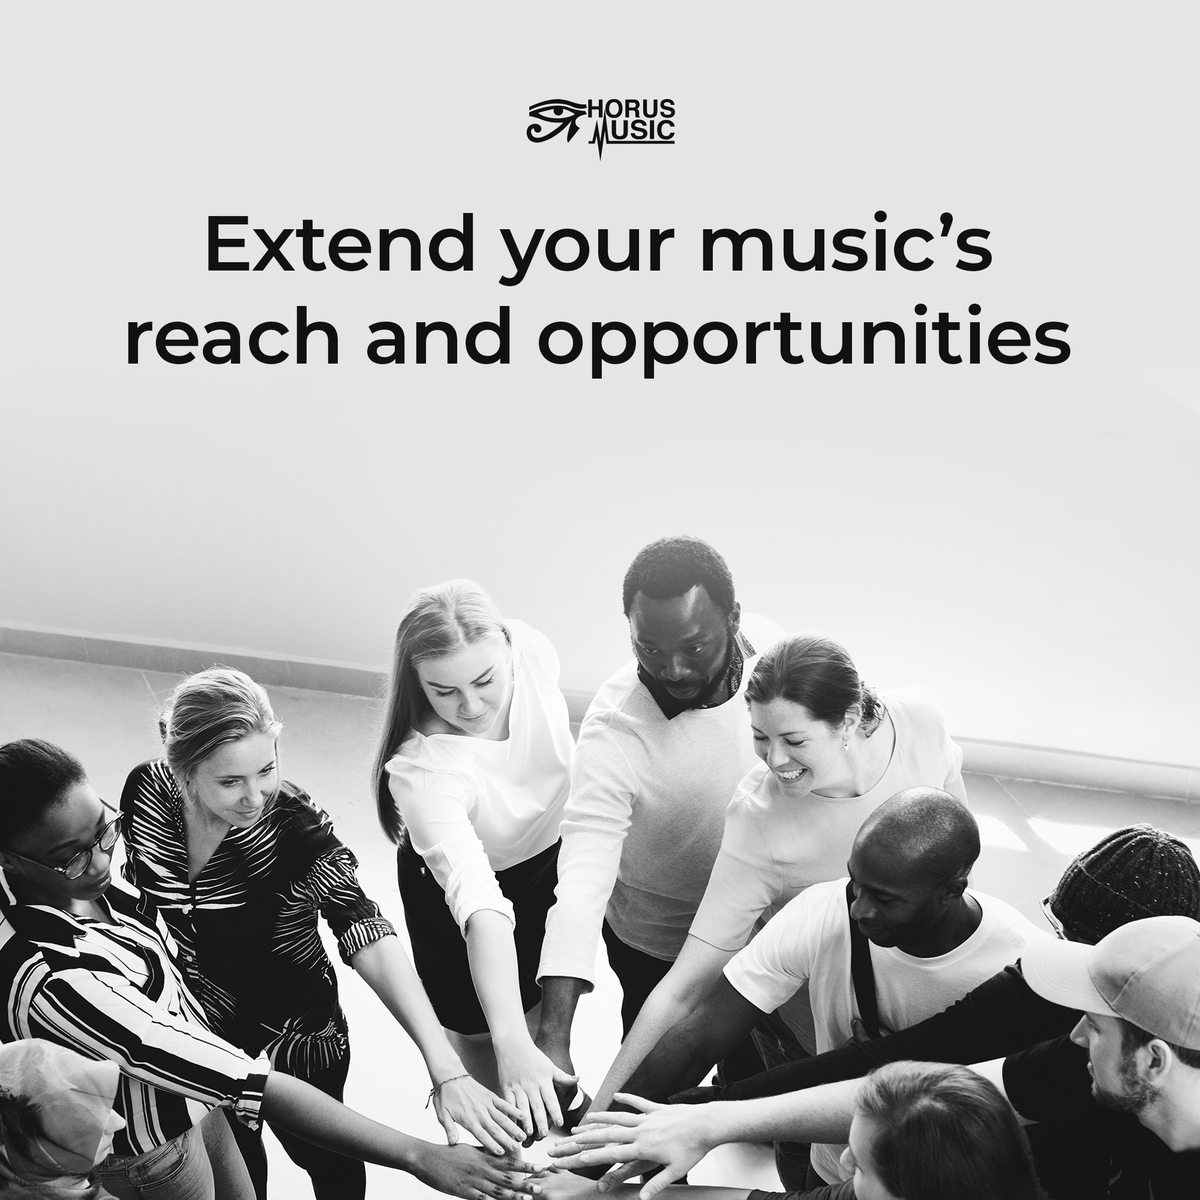 Release UNLIMITED music for just £20 per year. Ready to take the next step in your music career? Unlimited Distribution from Horus Music is what you need. https://t.co/L82wEoQ5LI #musicdistribution #unlimiteddistribution #musicindustry #musicmarketing #musicplaylisting https://t.co/ZYeANpiNpd